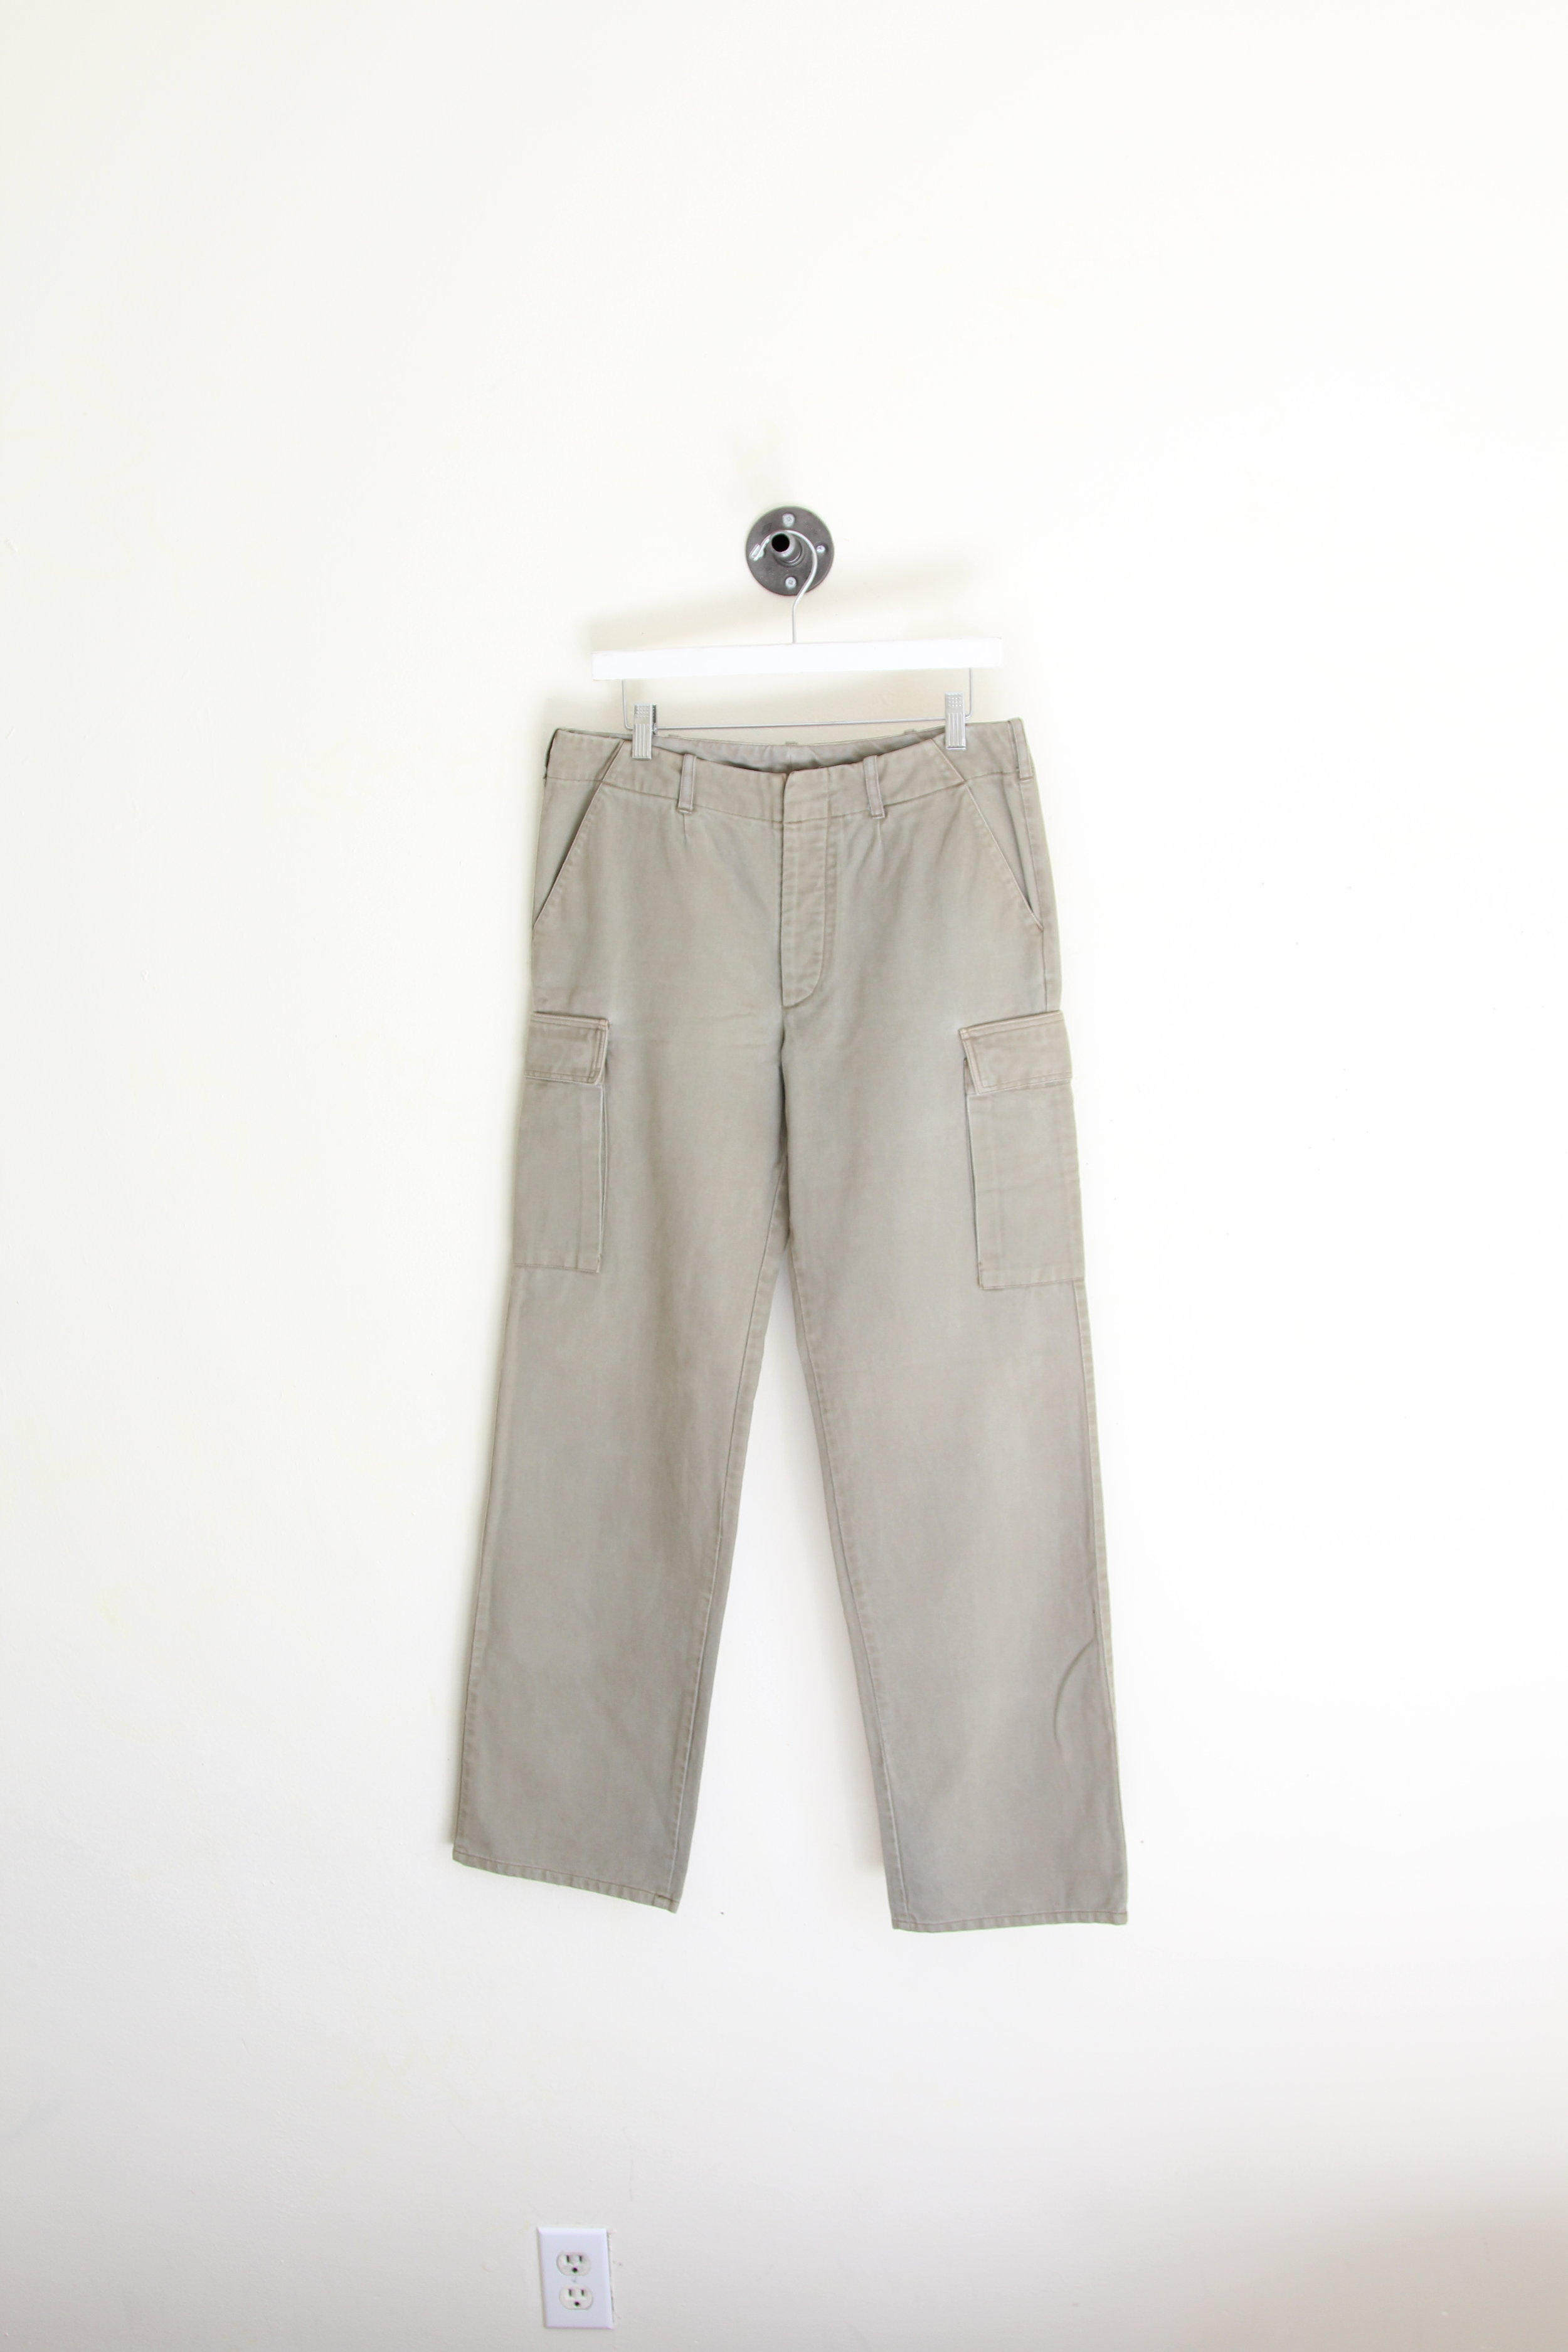 Helmut Lang AW 1998 Cotton Cargo Trousers